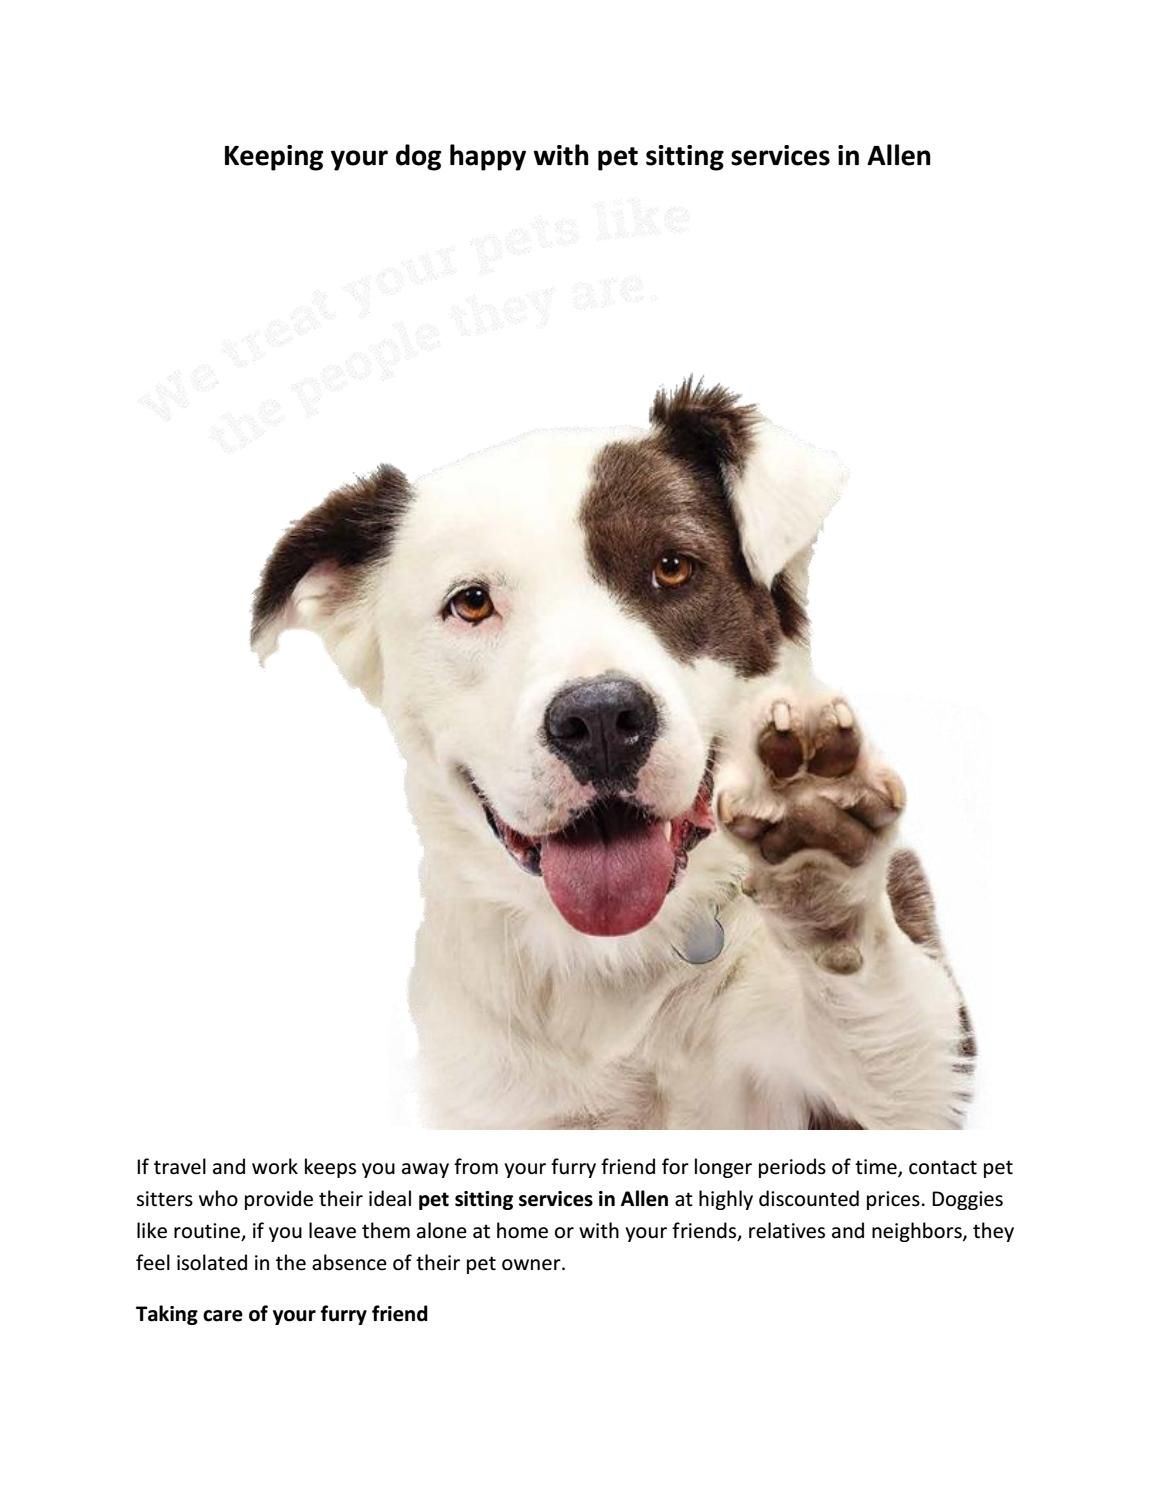 Pet Sitting Services in Allen Keep Your Dog Happy (With